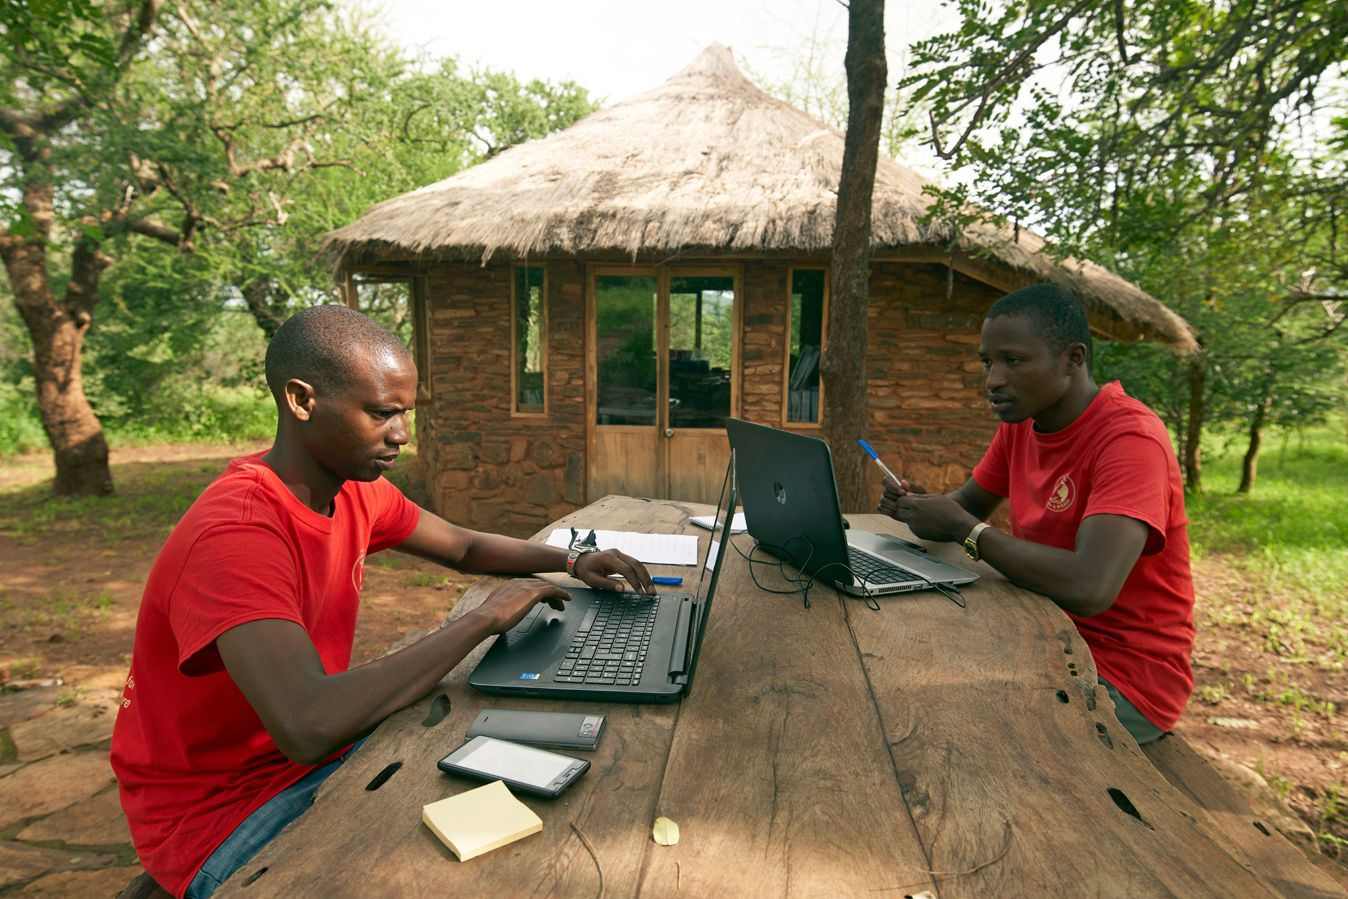 Staff office at the Noloholo Environmental Center